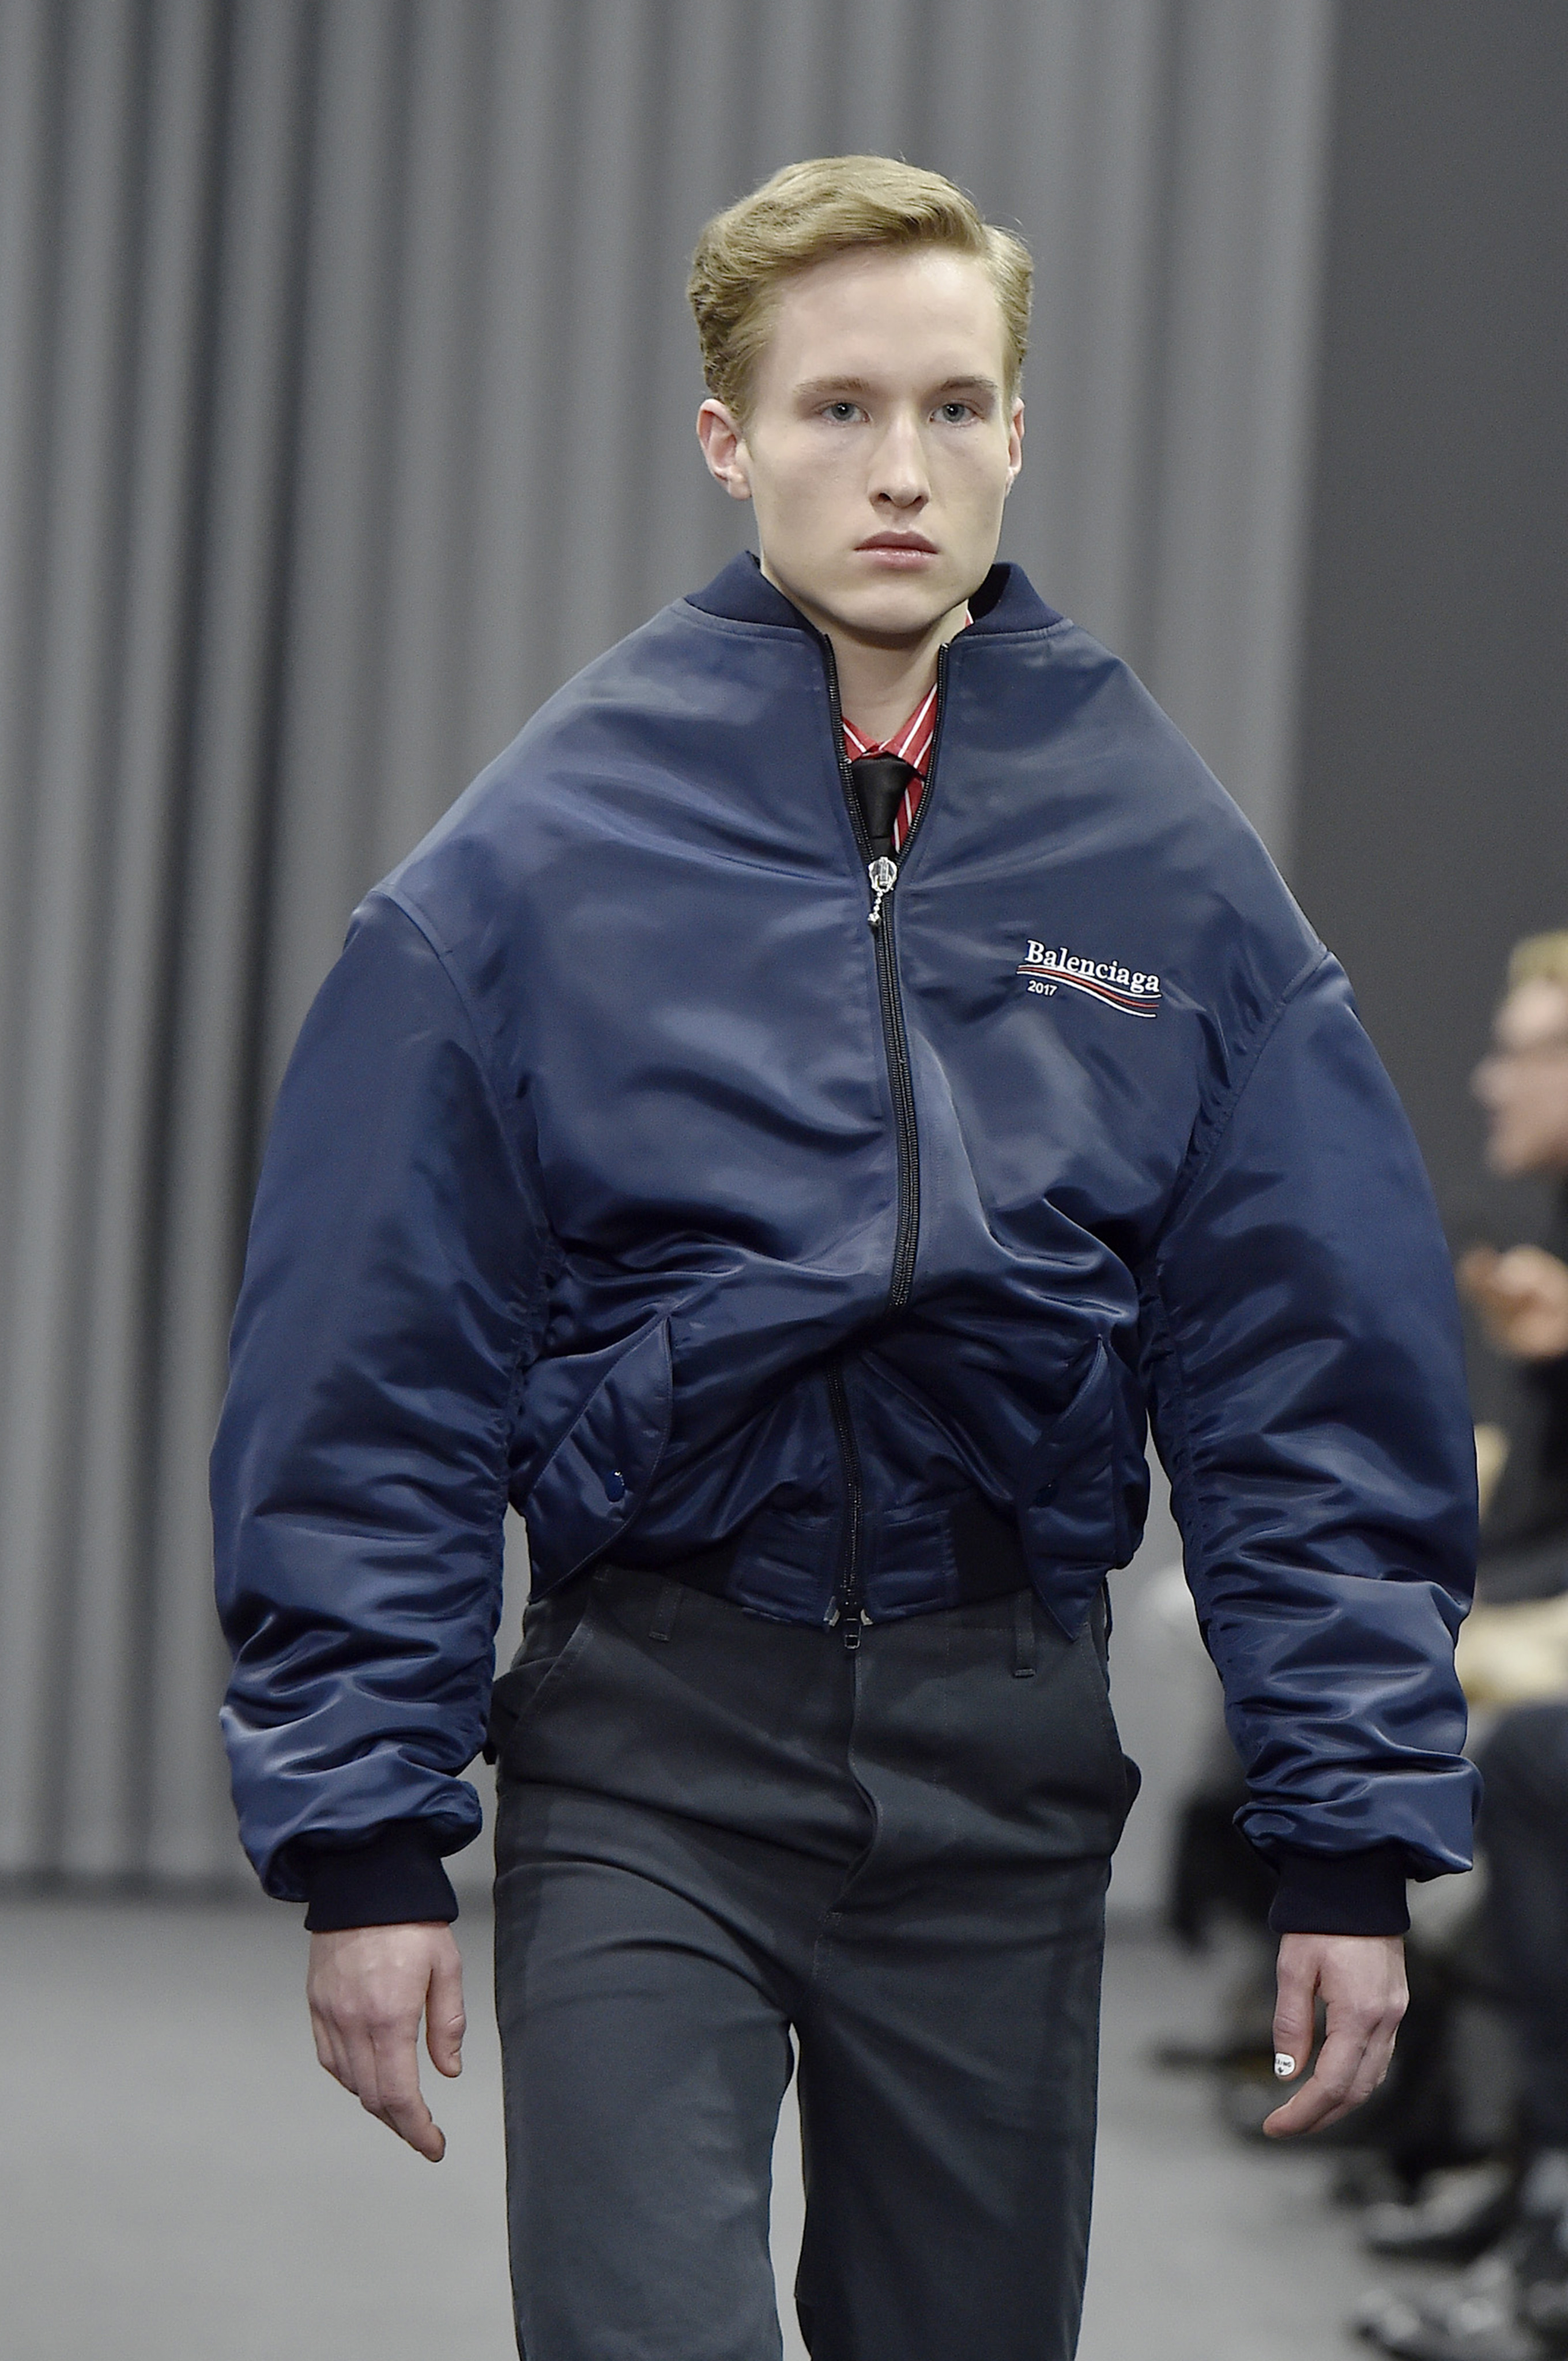 Balenciaga Pays Tribute to Bernie Sanders on the Runway ...